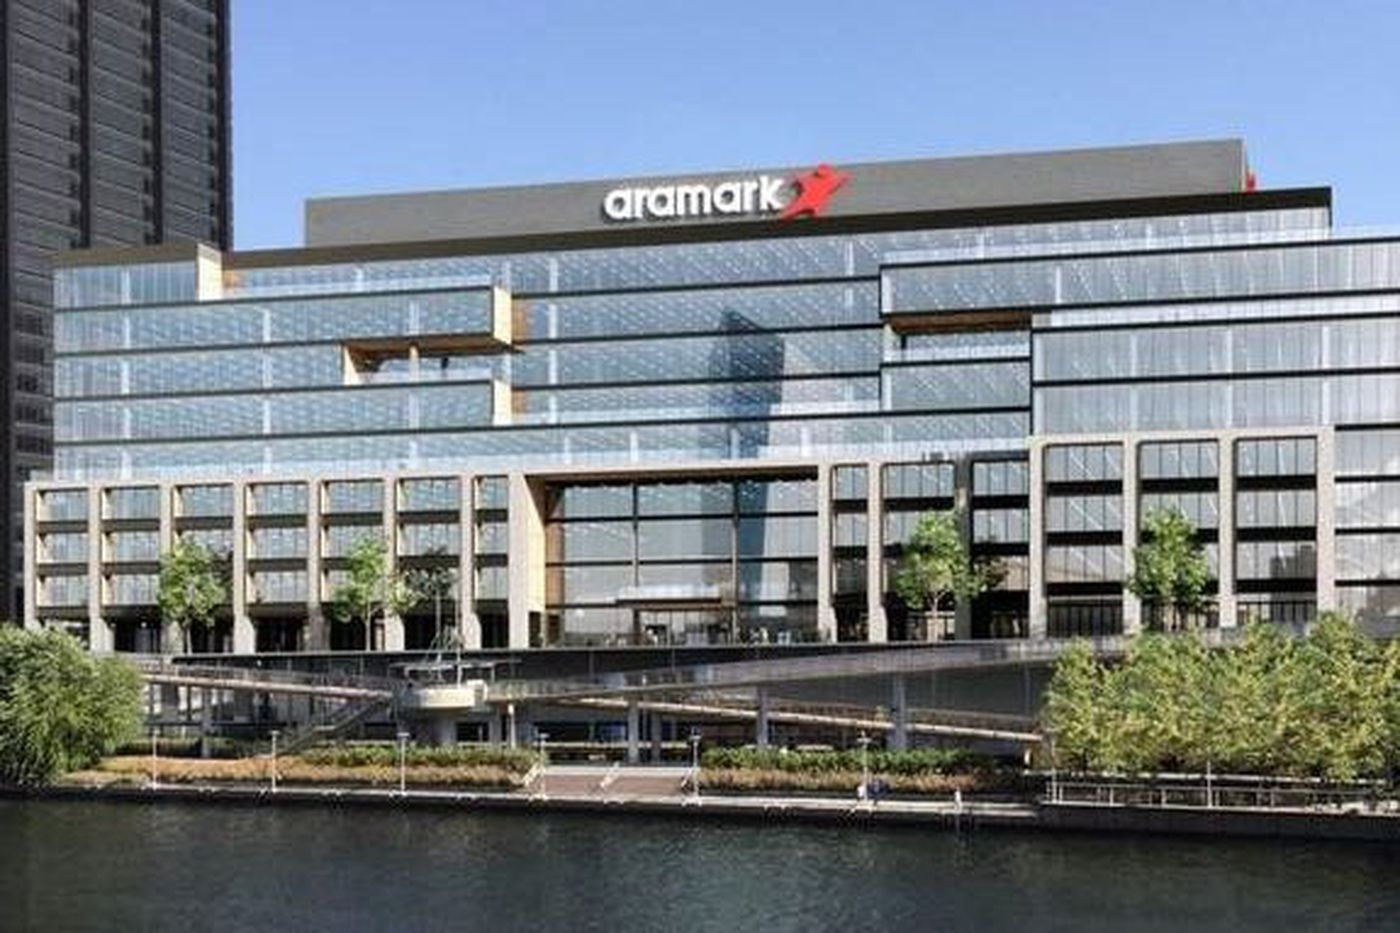 Radio giant Entercom looking to move HQ from Bala Cynwyd to Philly waterfront, sources say